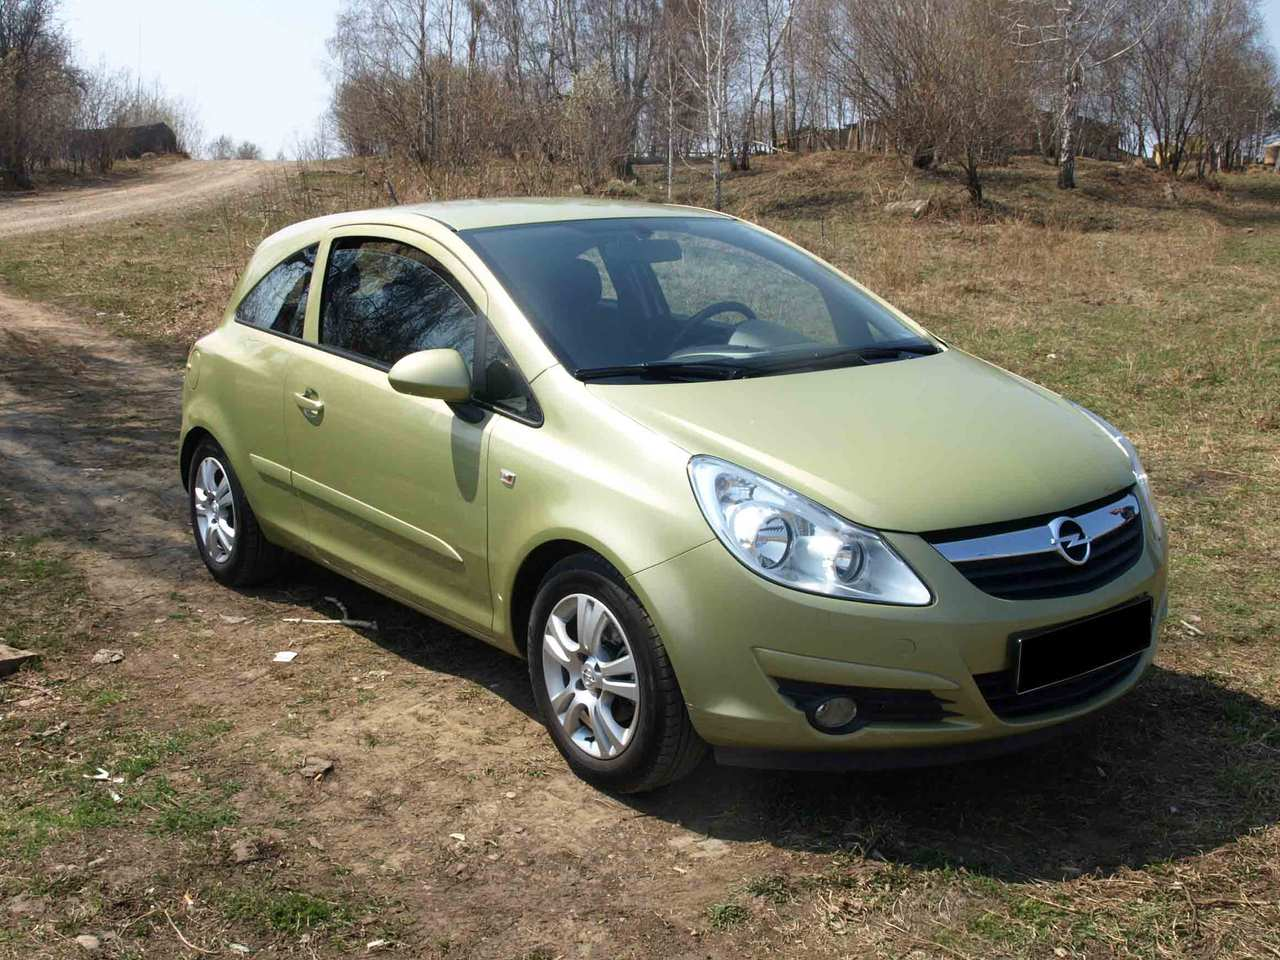 2007 opel corsa pictures gasoline ff cvt for sale. Black Bedroom Furniture Sets. Home Design Ideas